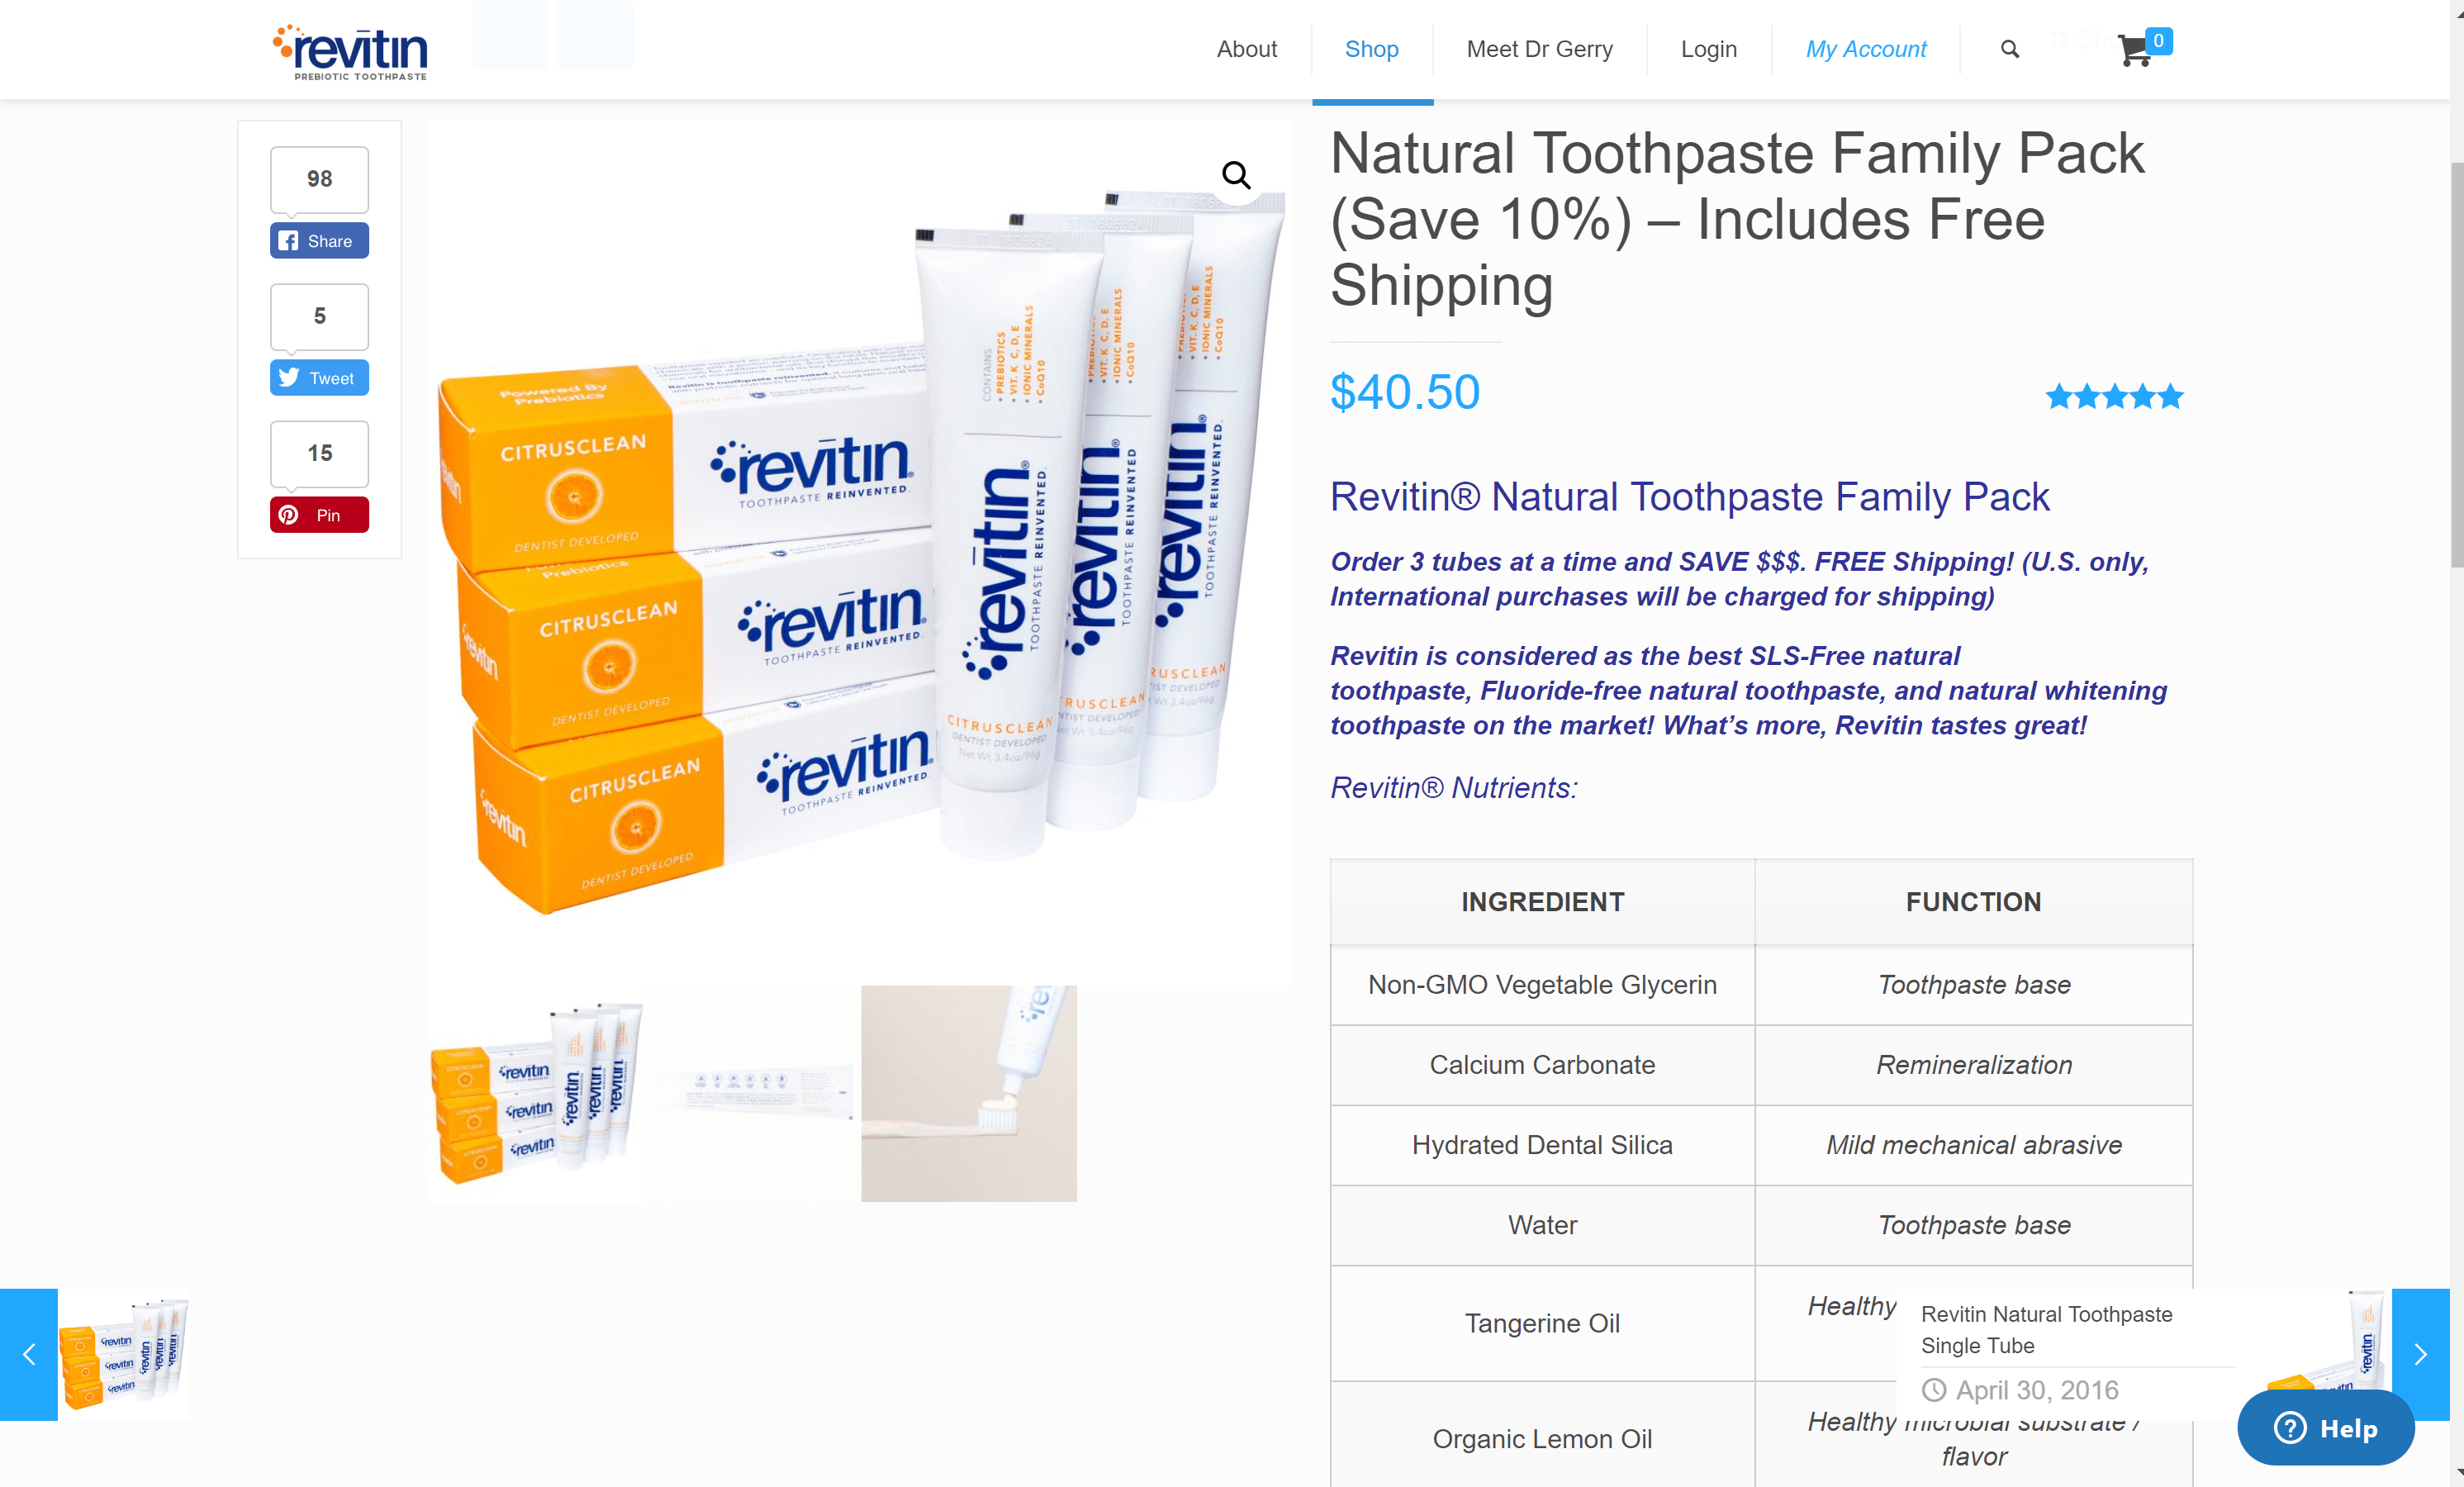 Revitin natural toothpaste- Family pack offer